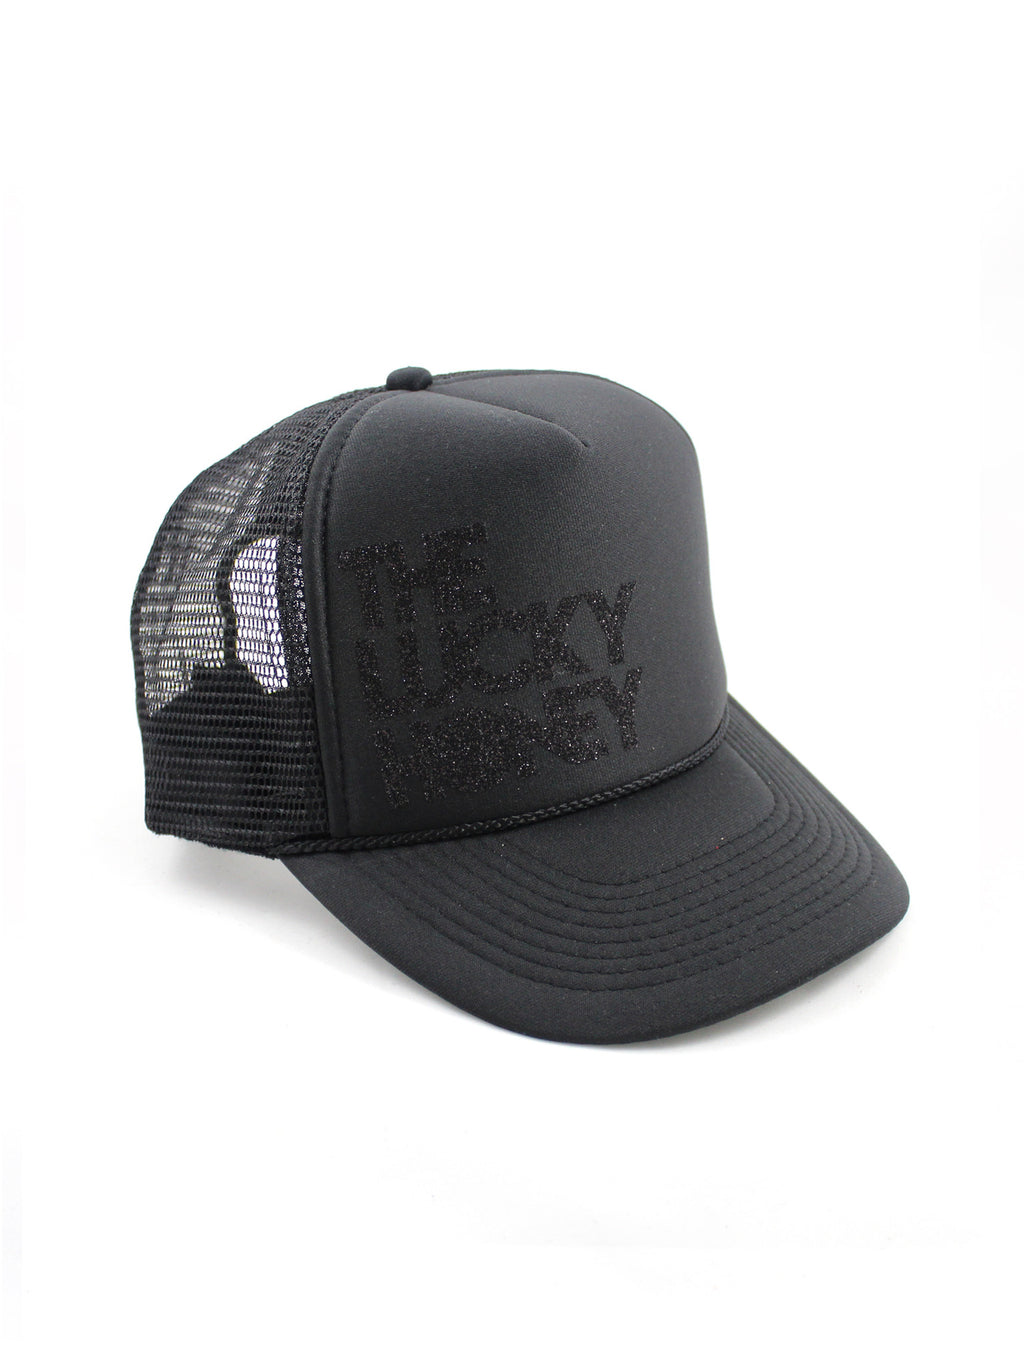 THE LUCKY HONEY Hat | Black/Black Glitter